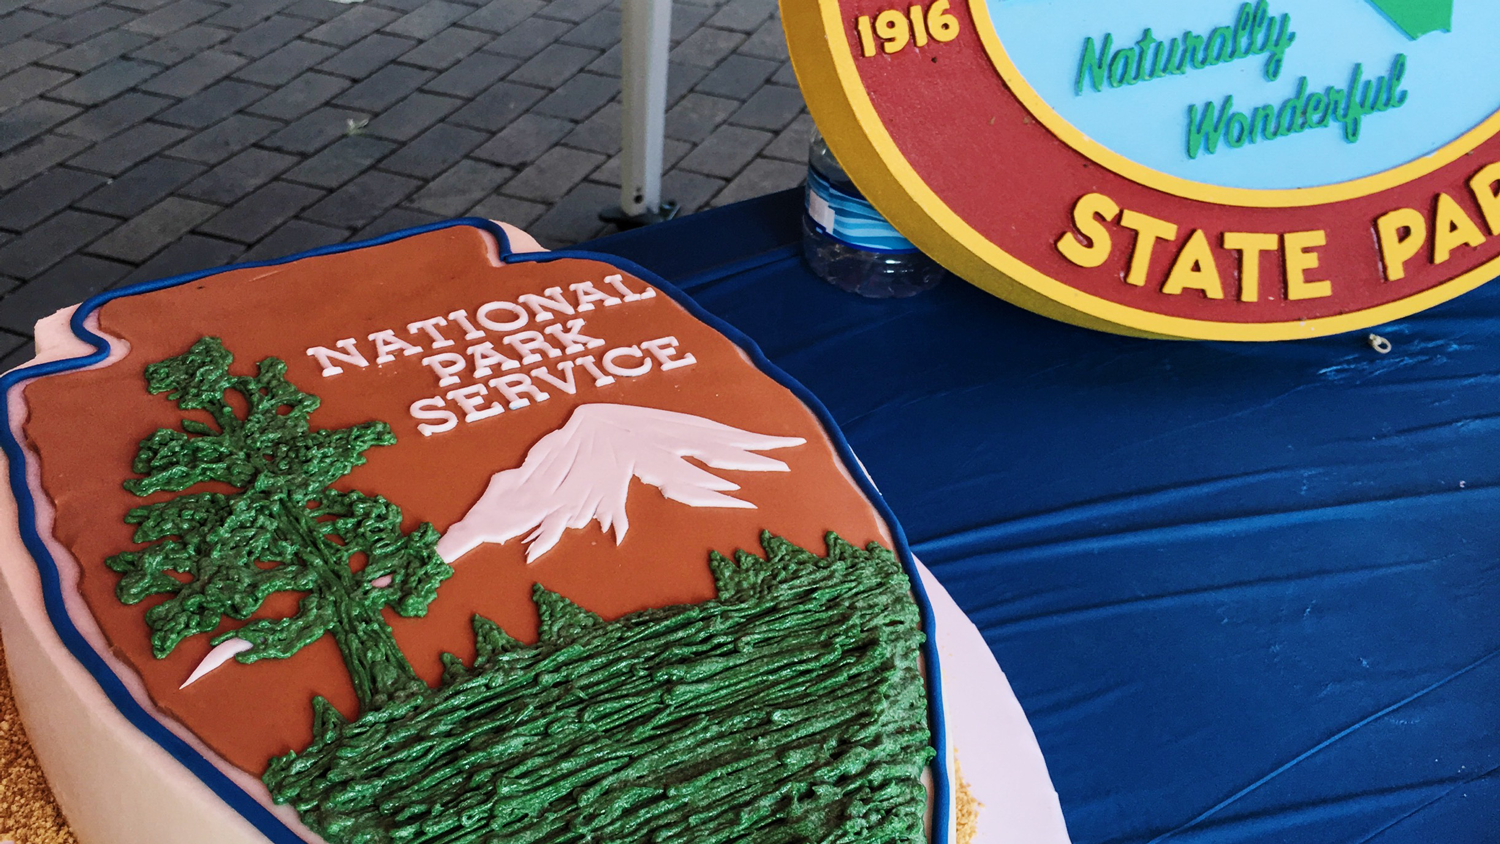 Birthday cakes for the National Park Service and North Carolina State Parks during the College of Natural Resources' Birthday on the Brickyard celebration.